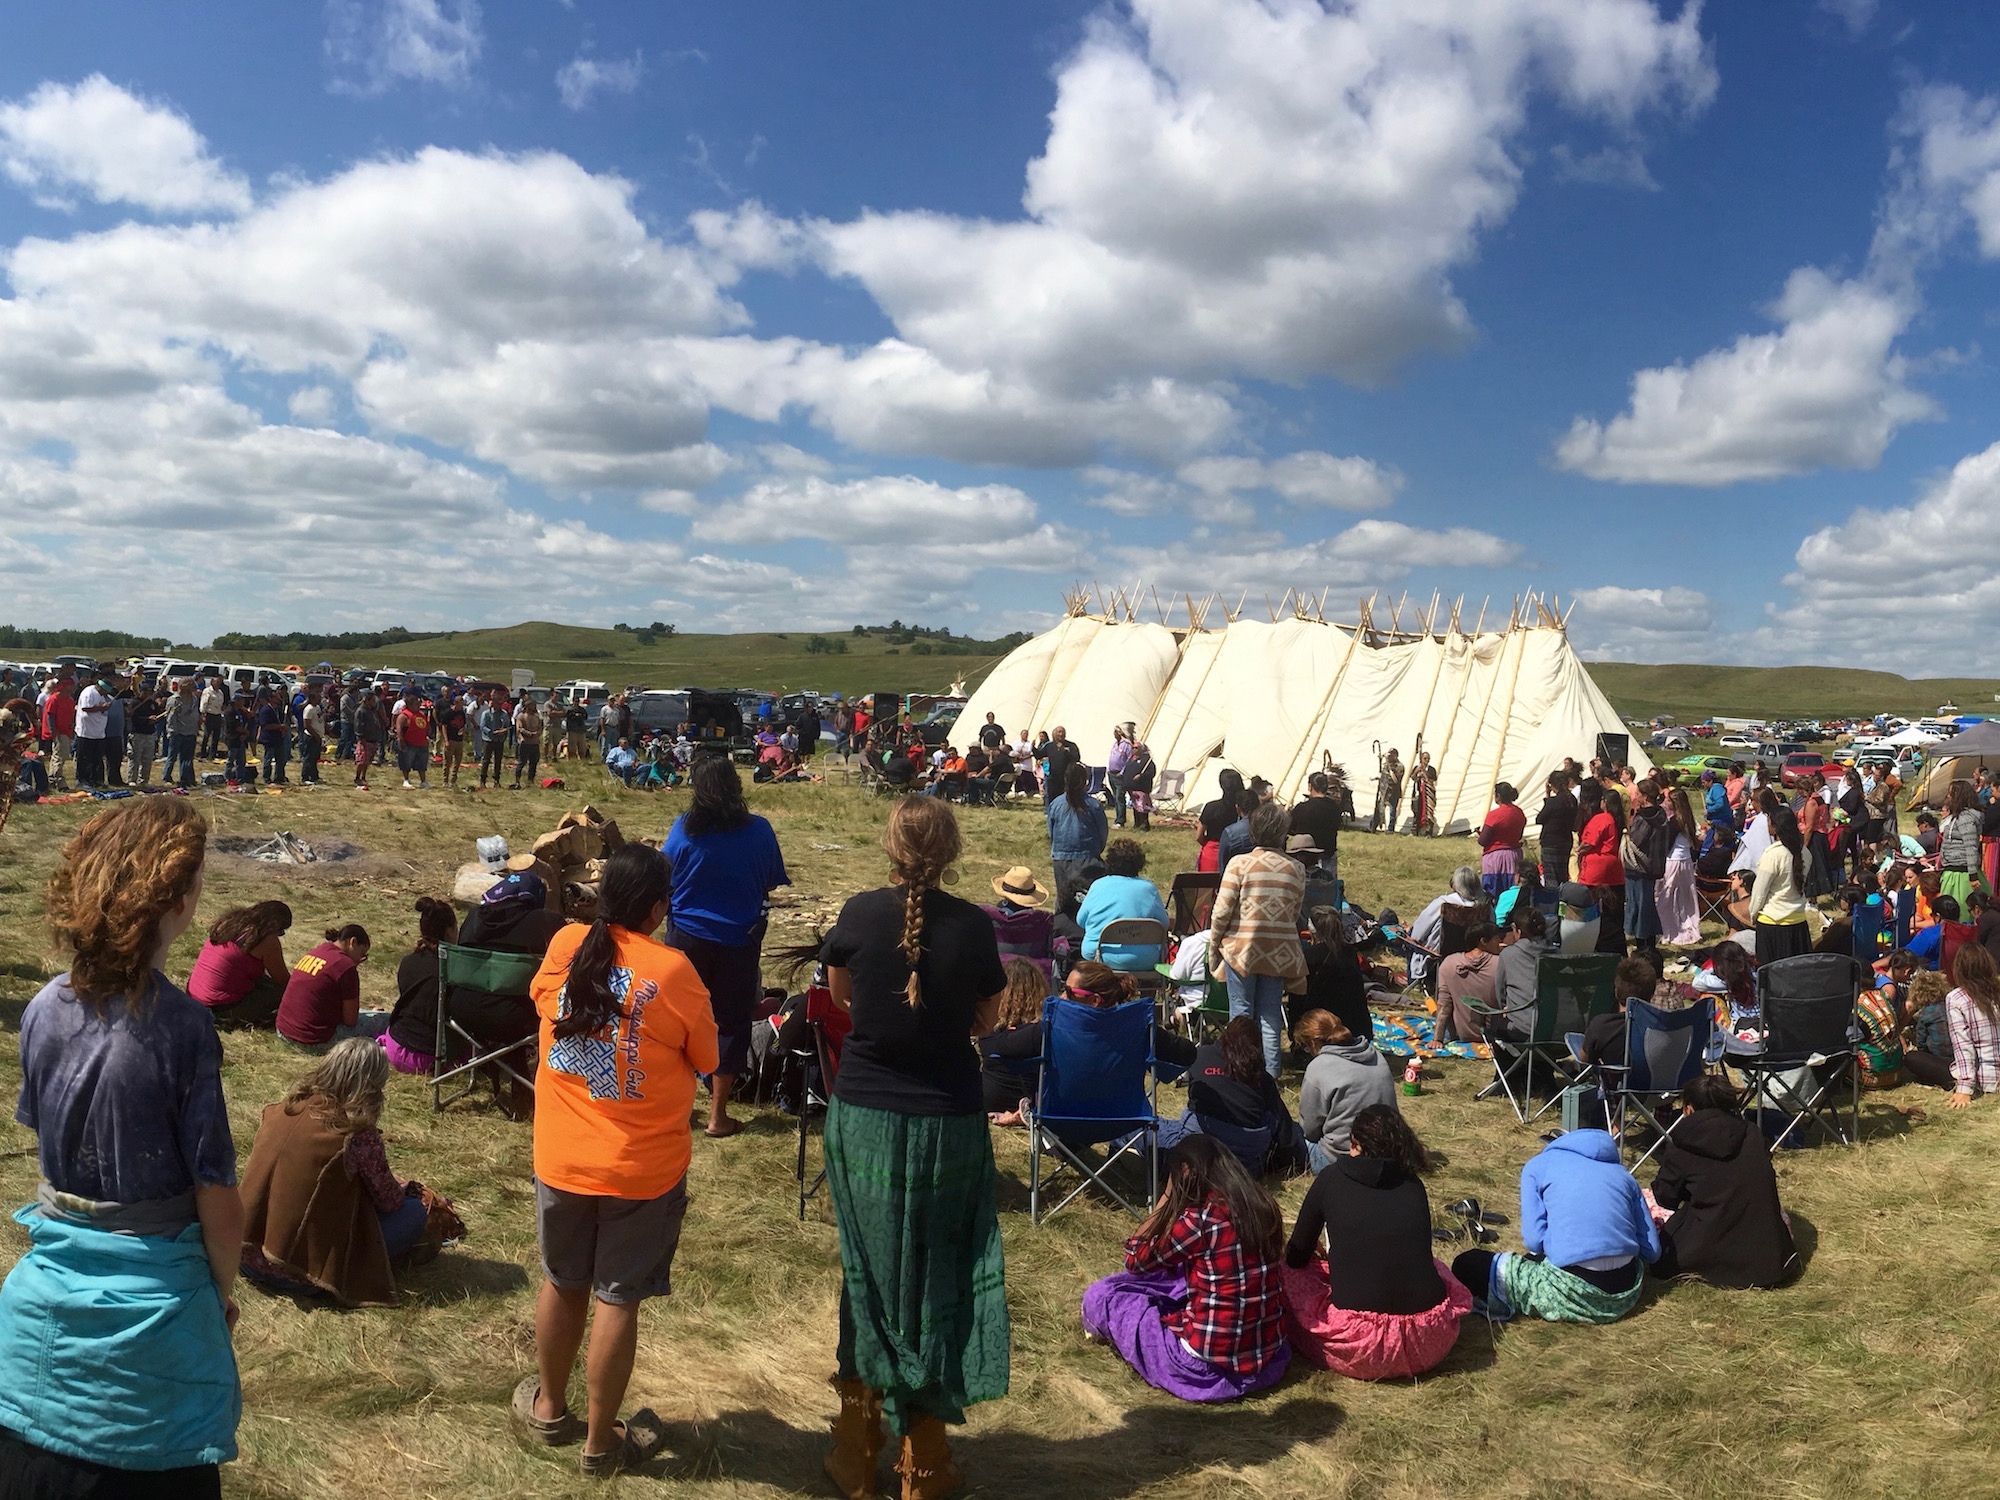 Lakota Country Times: Tribes remain united at #NoDAPL encampment